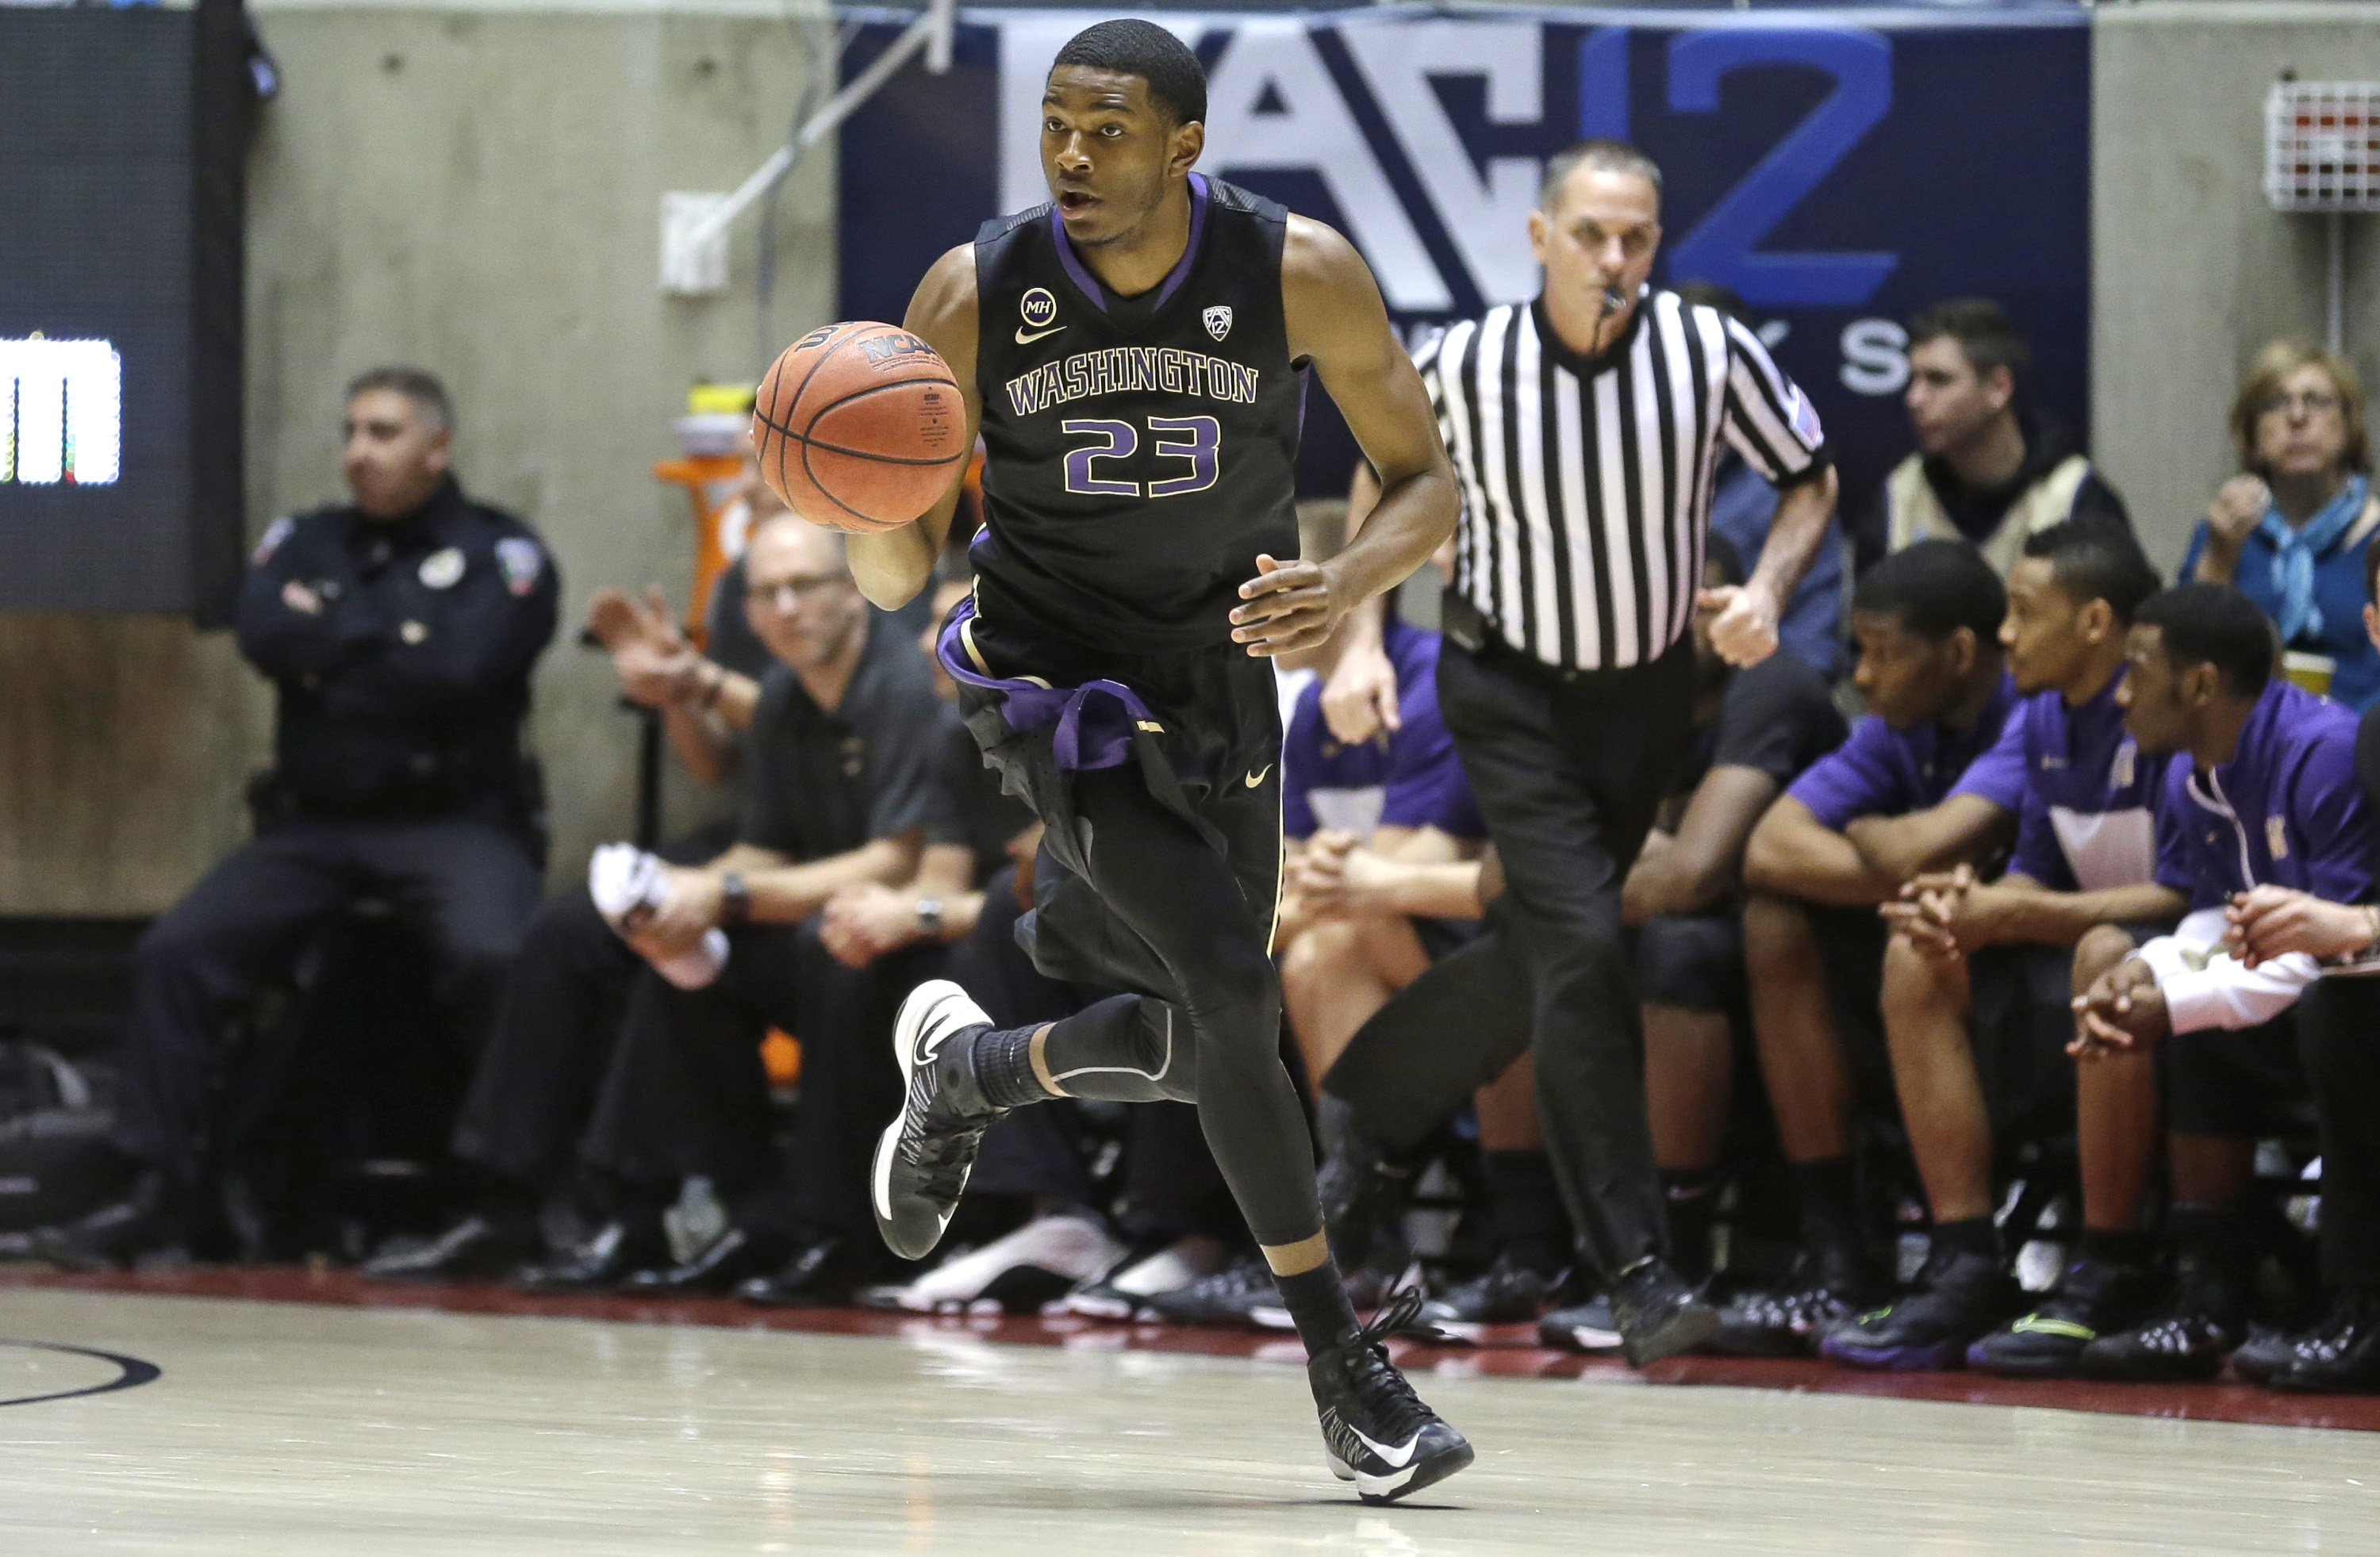 The Washington Huskies' senior placed in the top tier in all five events at the Draft Combine.